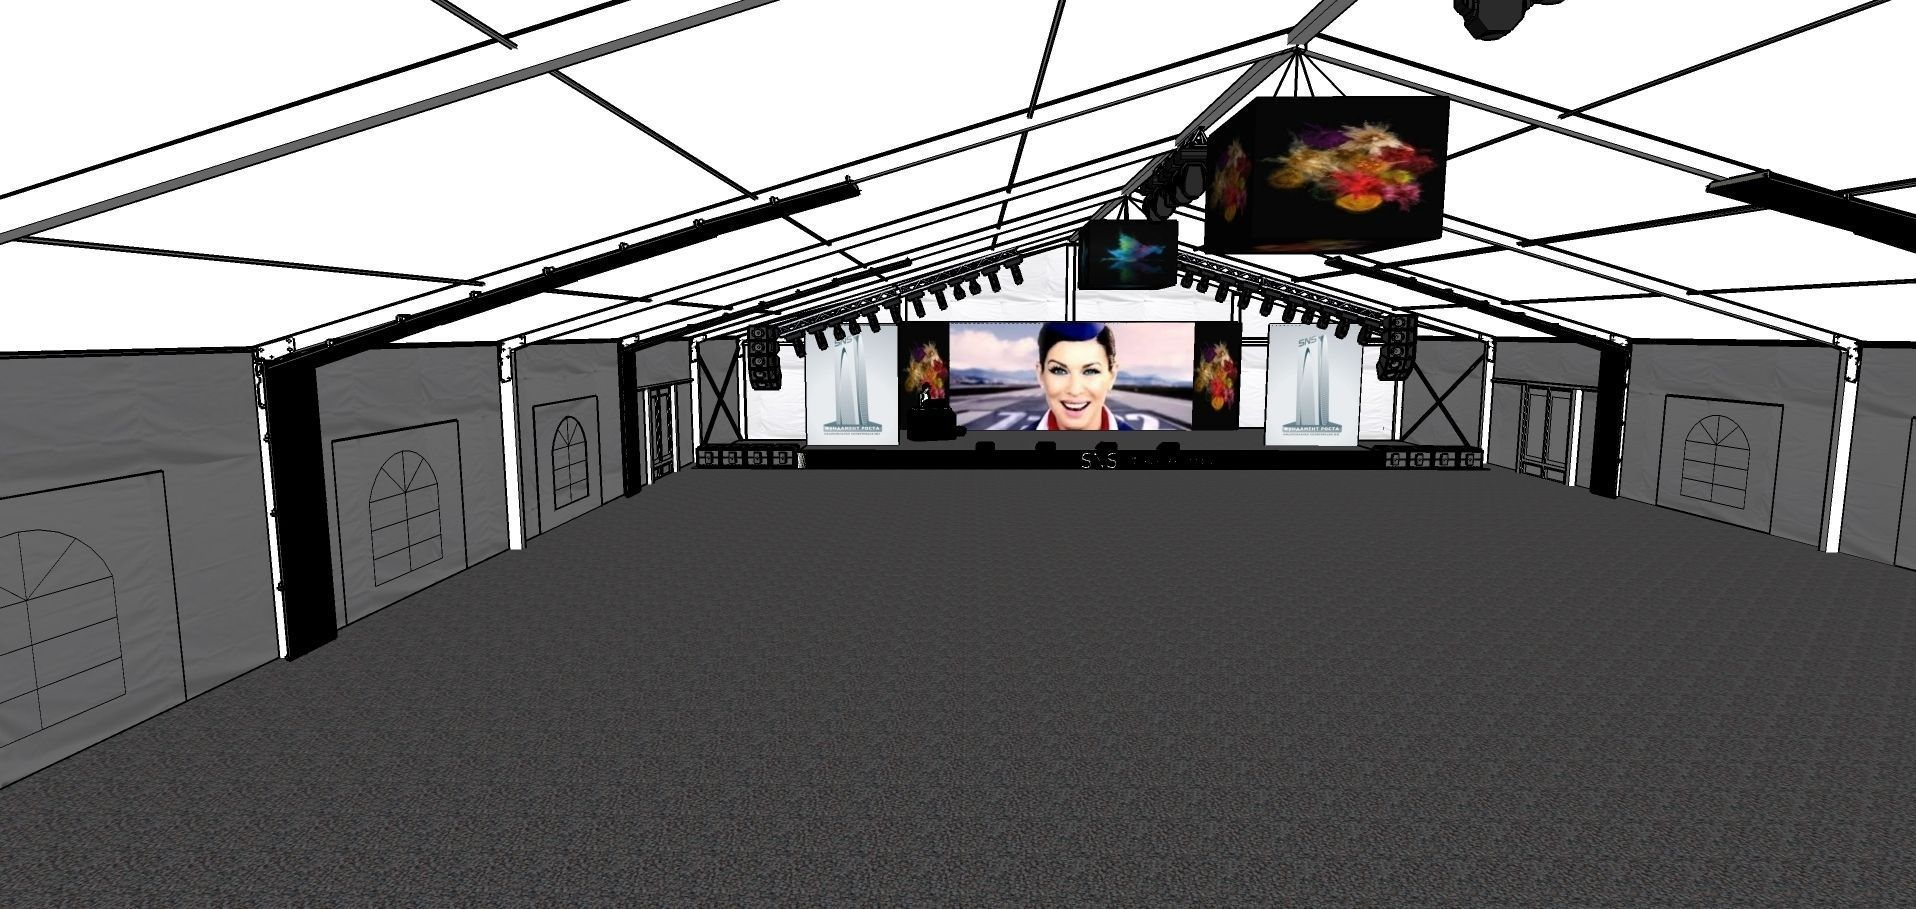 Exhibition Stand 3d Model Sketchup : The exhibition portable t airframe exhibi d model